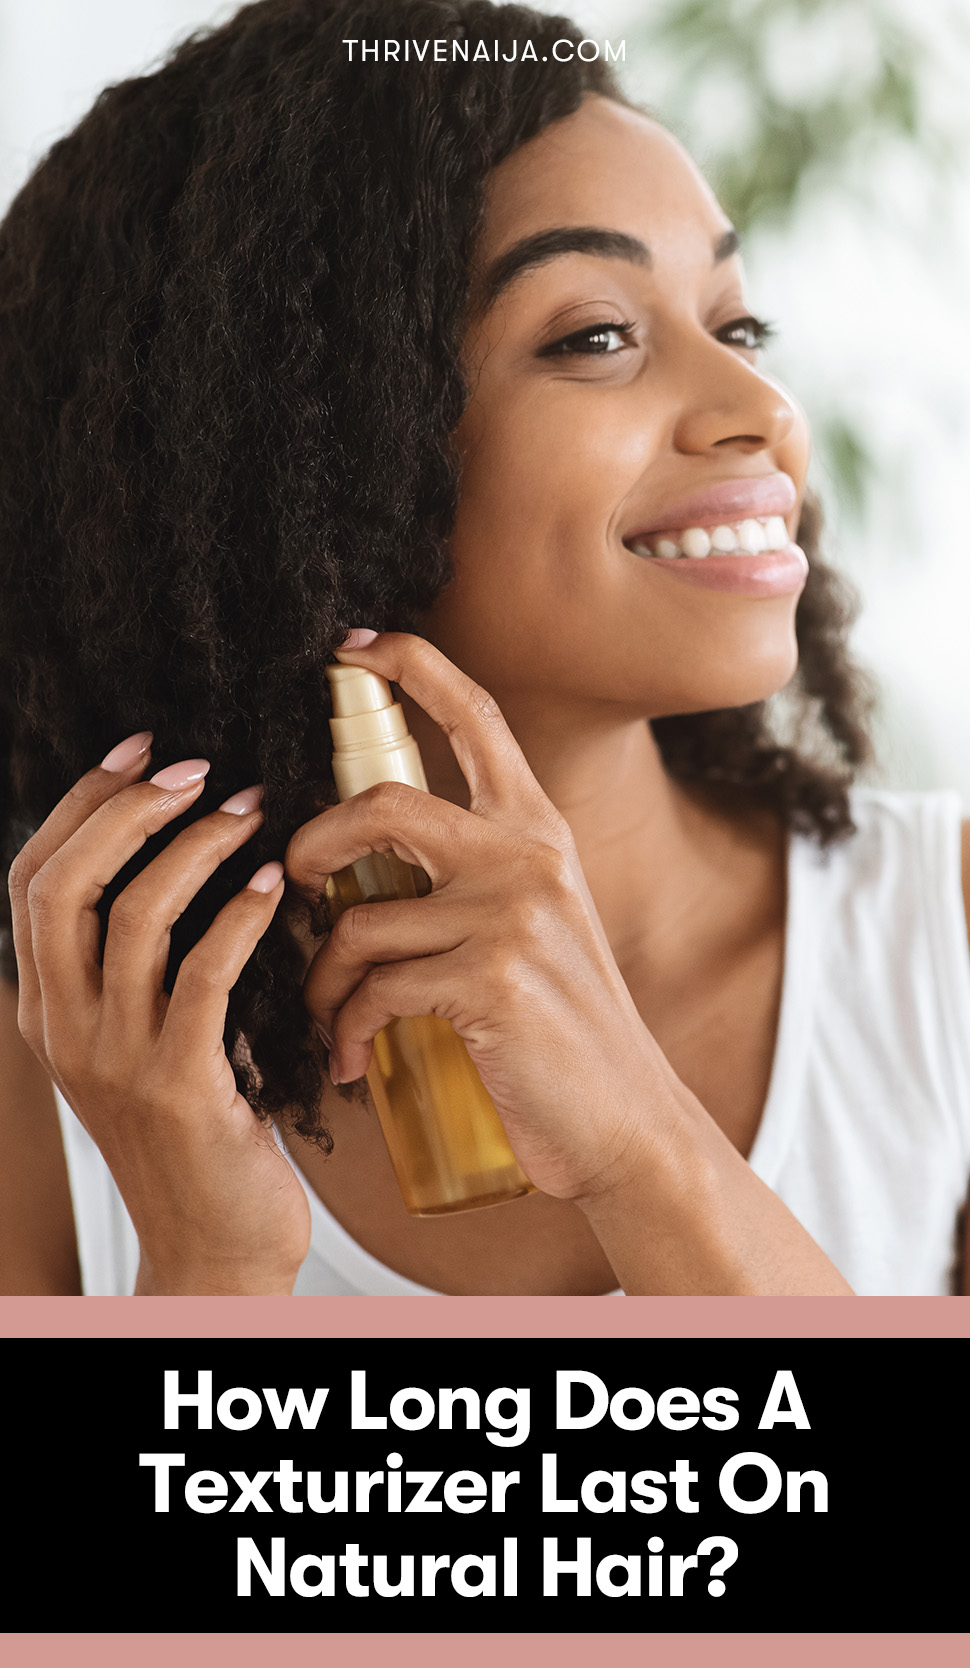 How Long Does A Texturizer Last On Natural Hair?